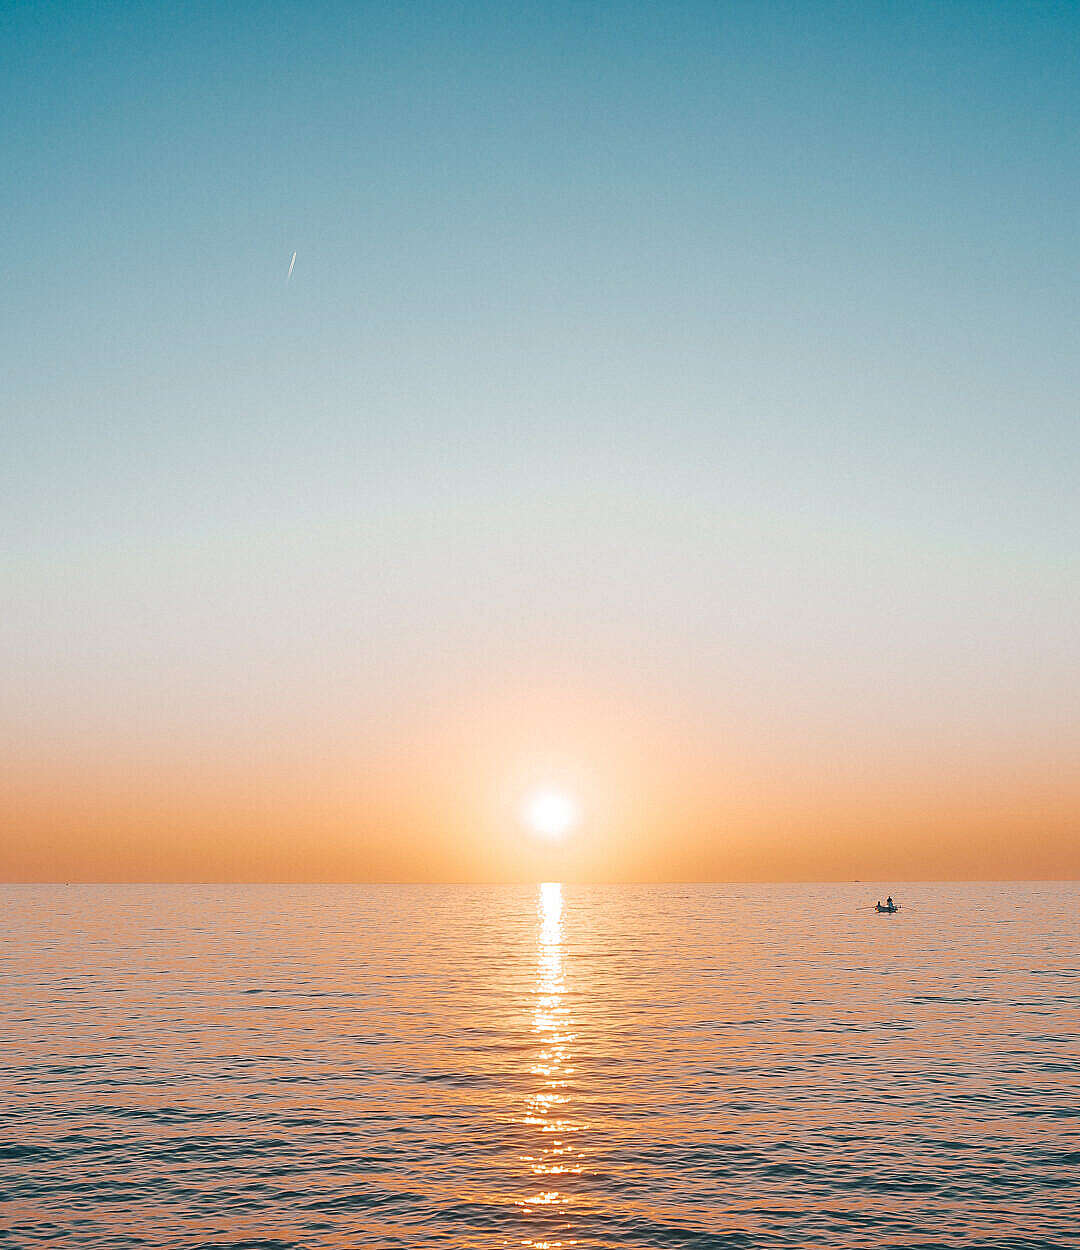 Download Sunset over the Sea with a Small Boat FREE Stock Photo